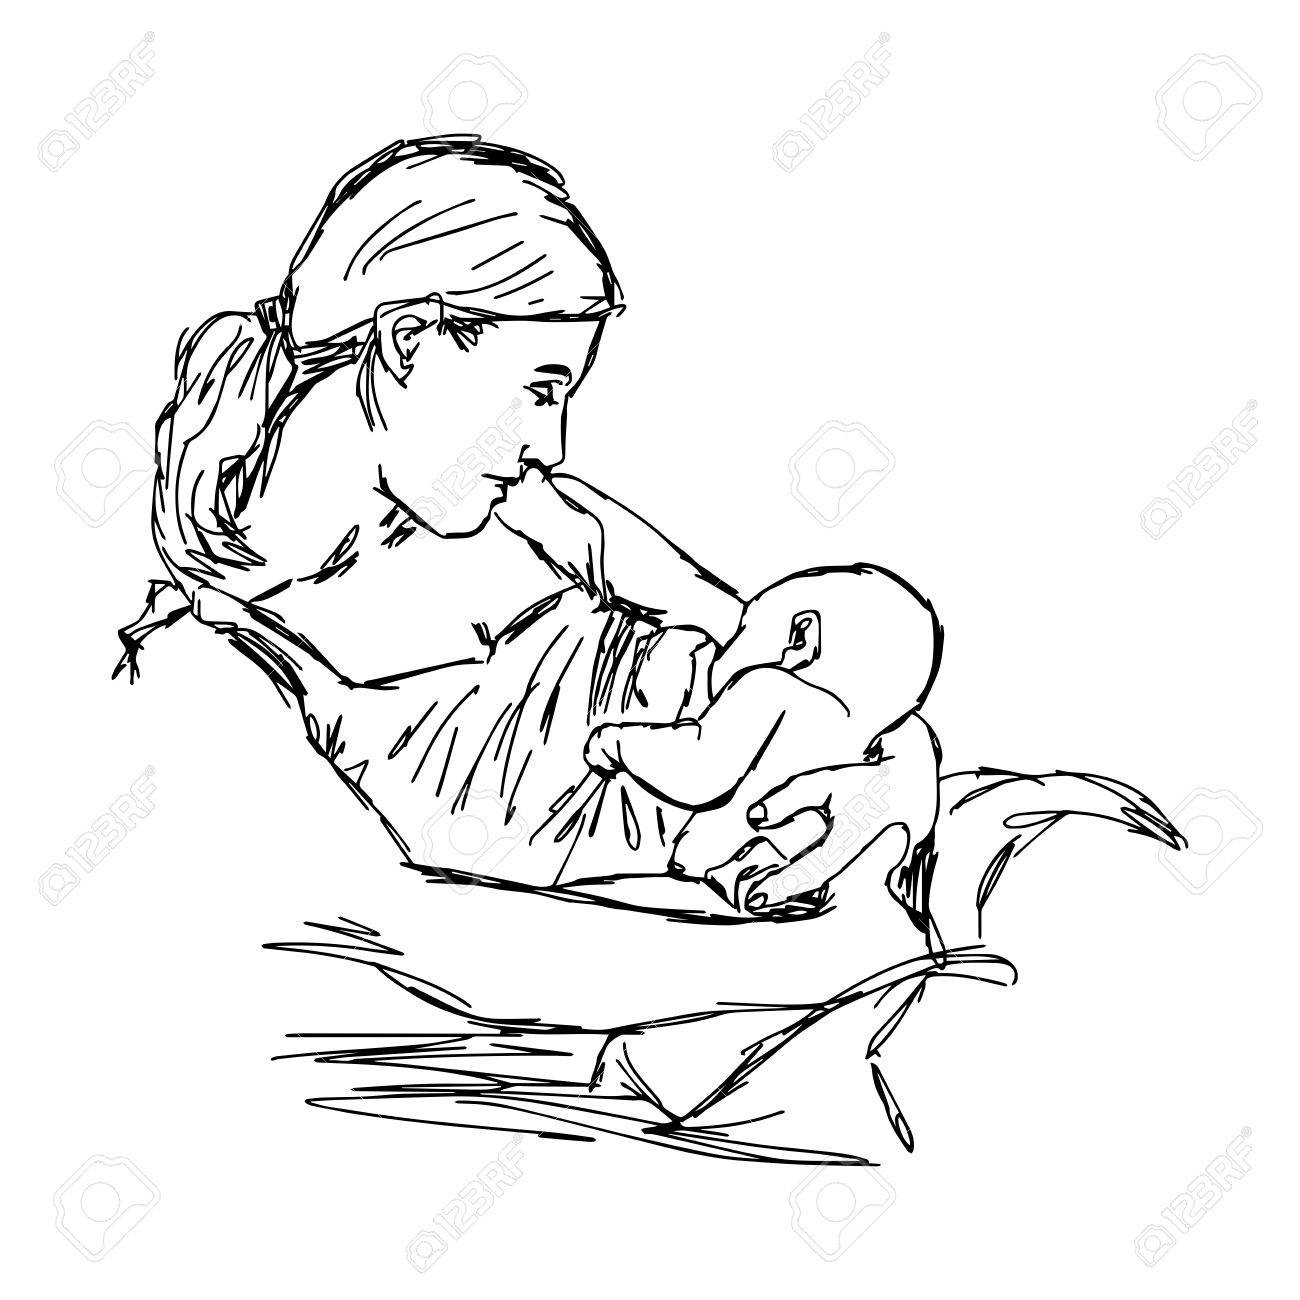 1300x1300 Illustration Doodle Of Sketch Mother Is Breast Feeding For Her